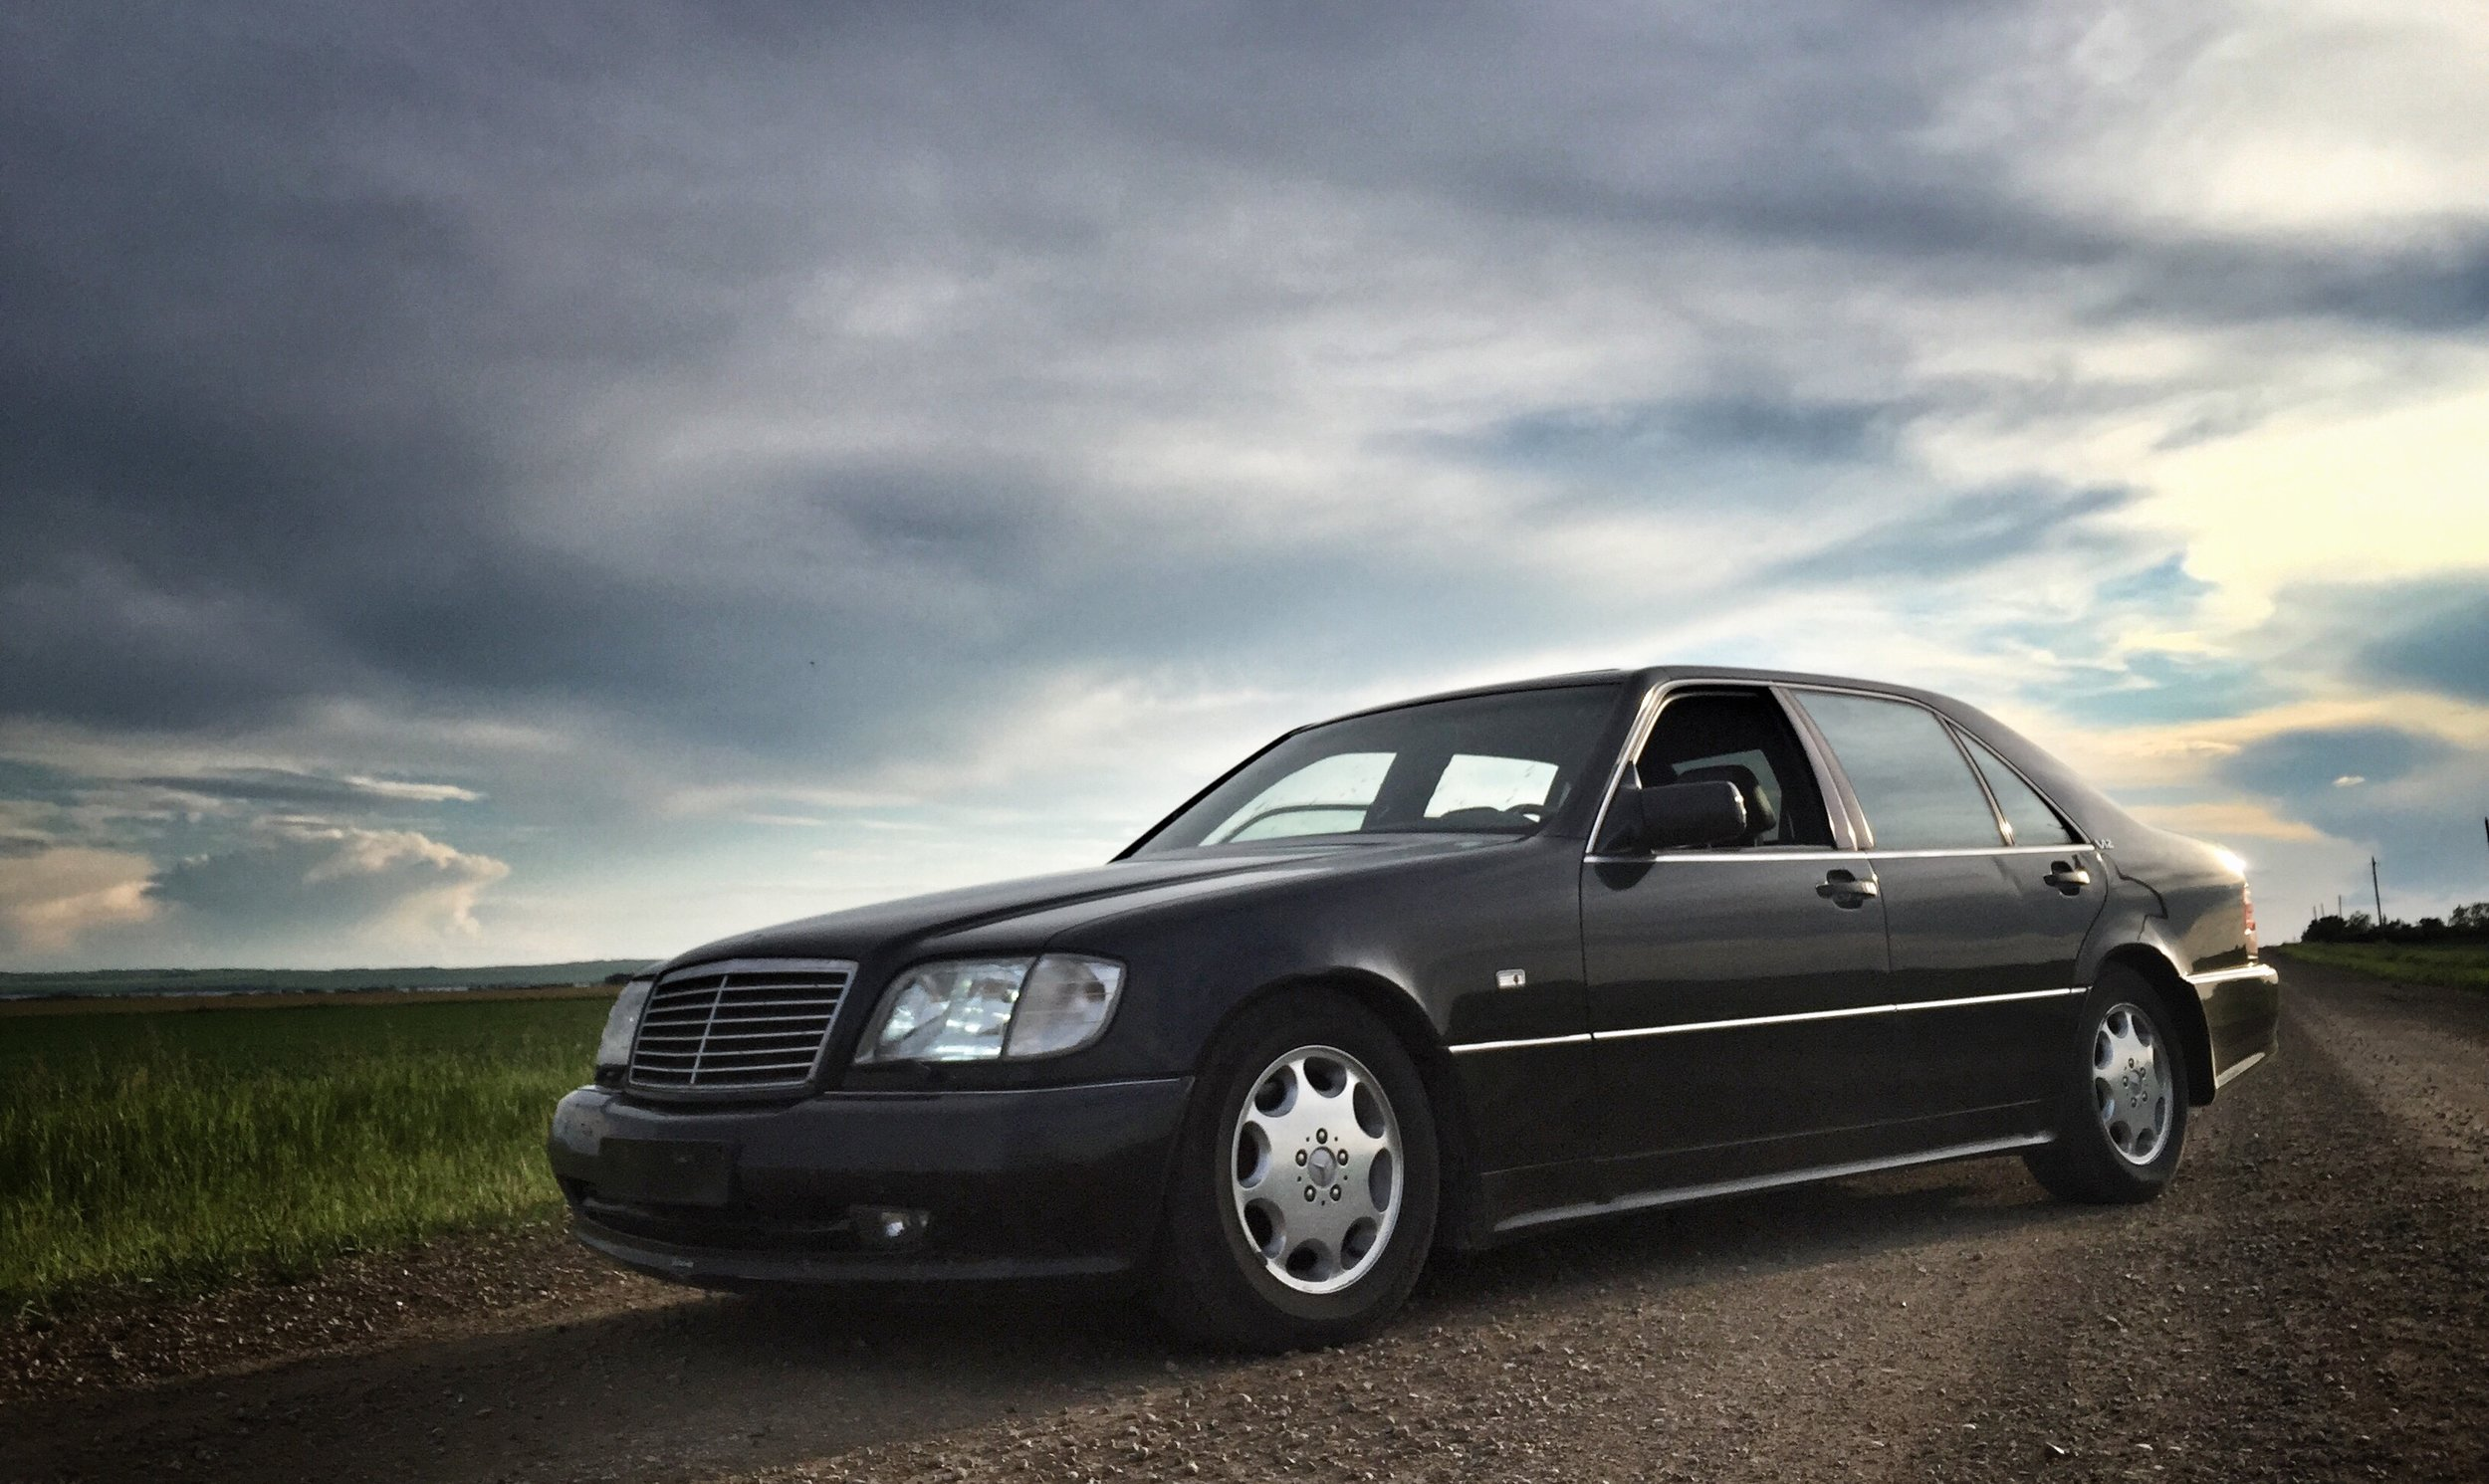 The King of the road! The S600 W140! The one and only one !